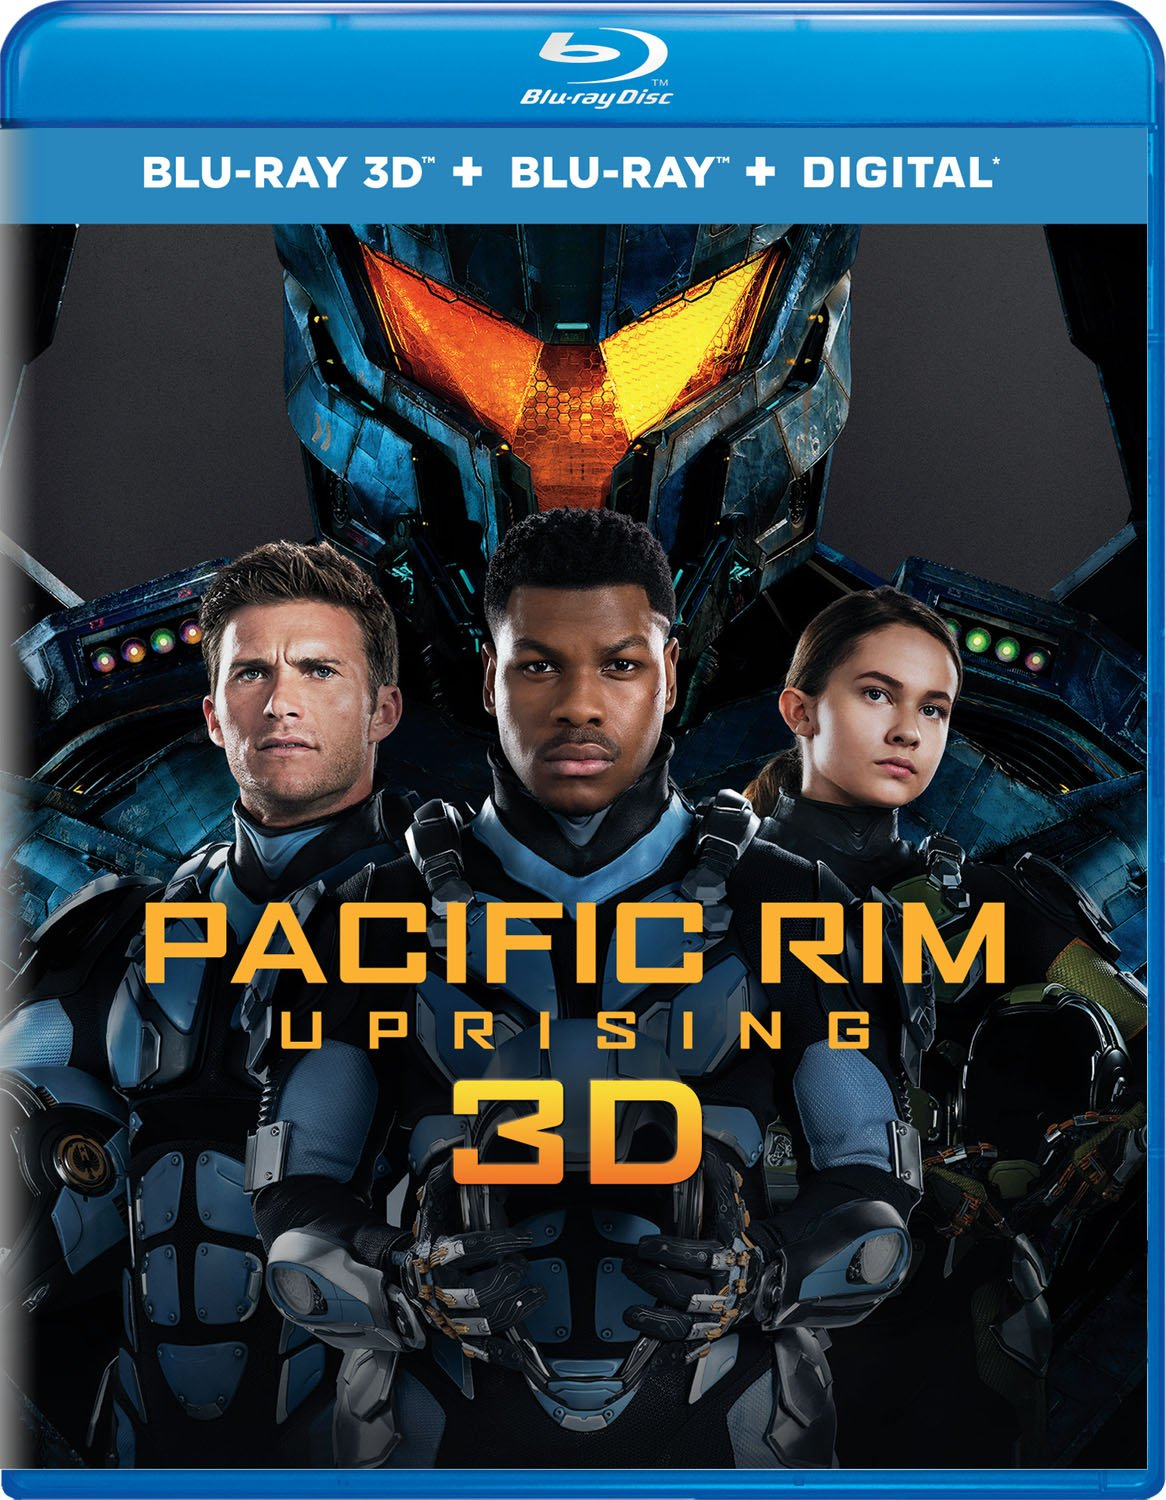 Blu-ray 3D : Pacific Rim Uprising (With Blu-Ray, 3 Dimensional, 2 Pack, Digital Copy, 2PC)